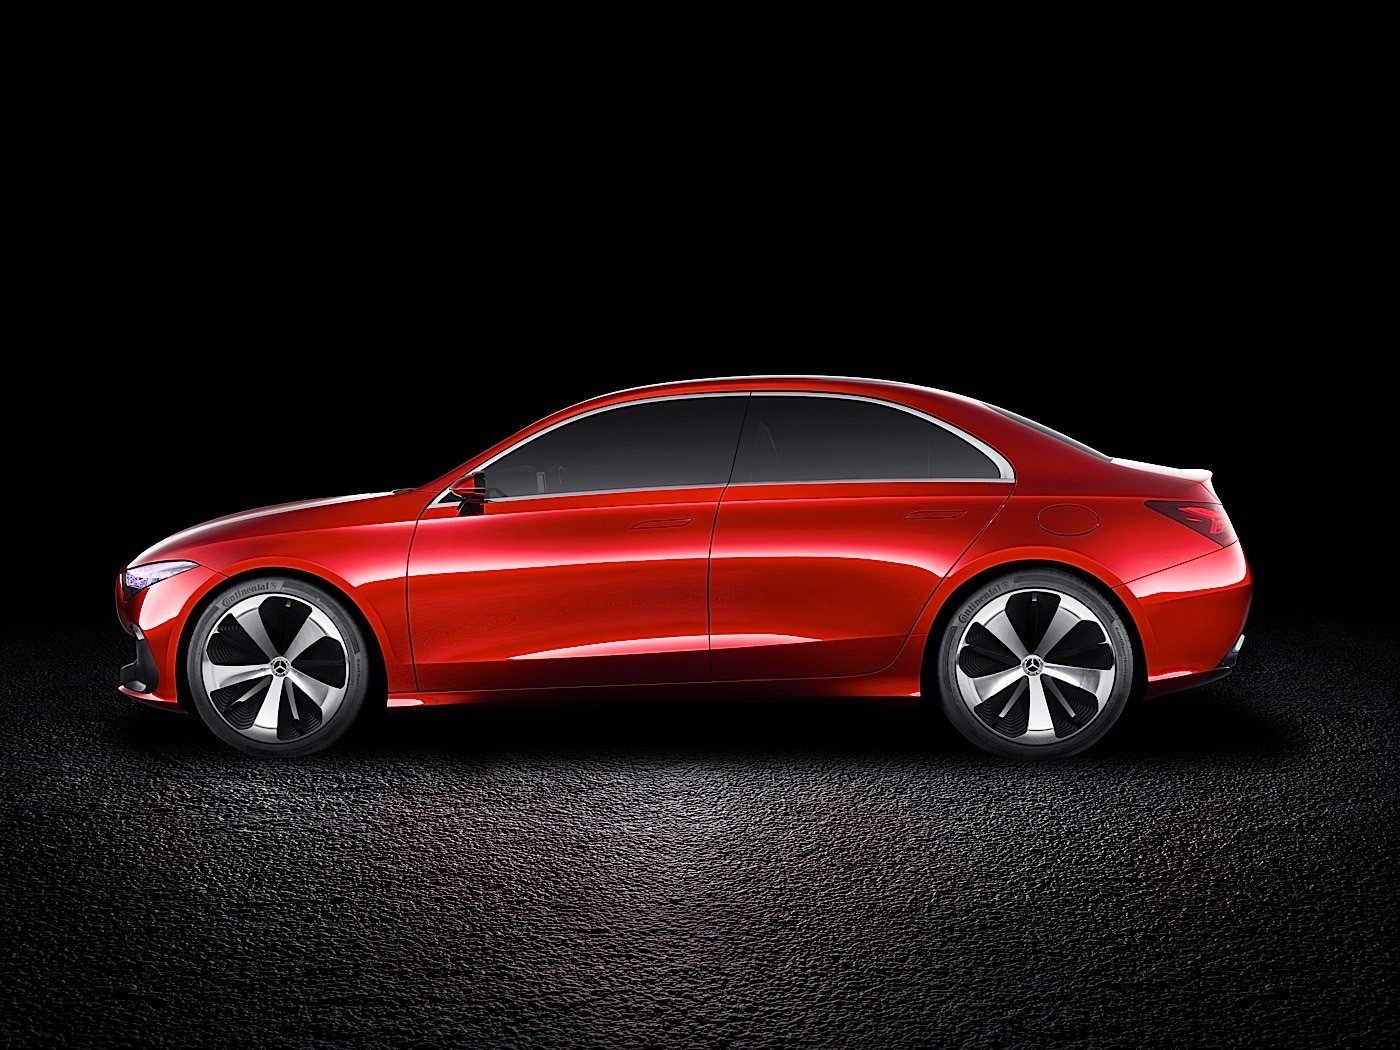 Mercedes benz concept a sedan previews future production for Upcoming mercedes benz models